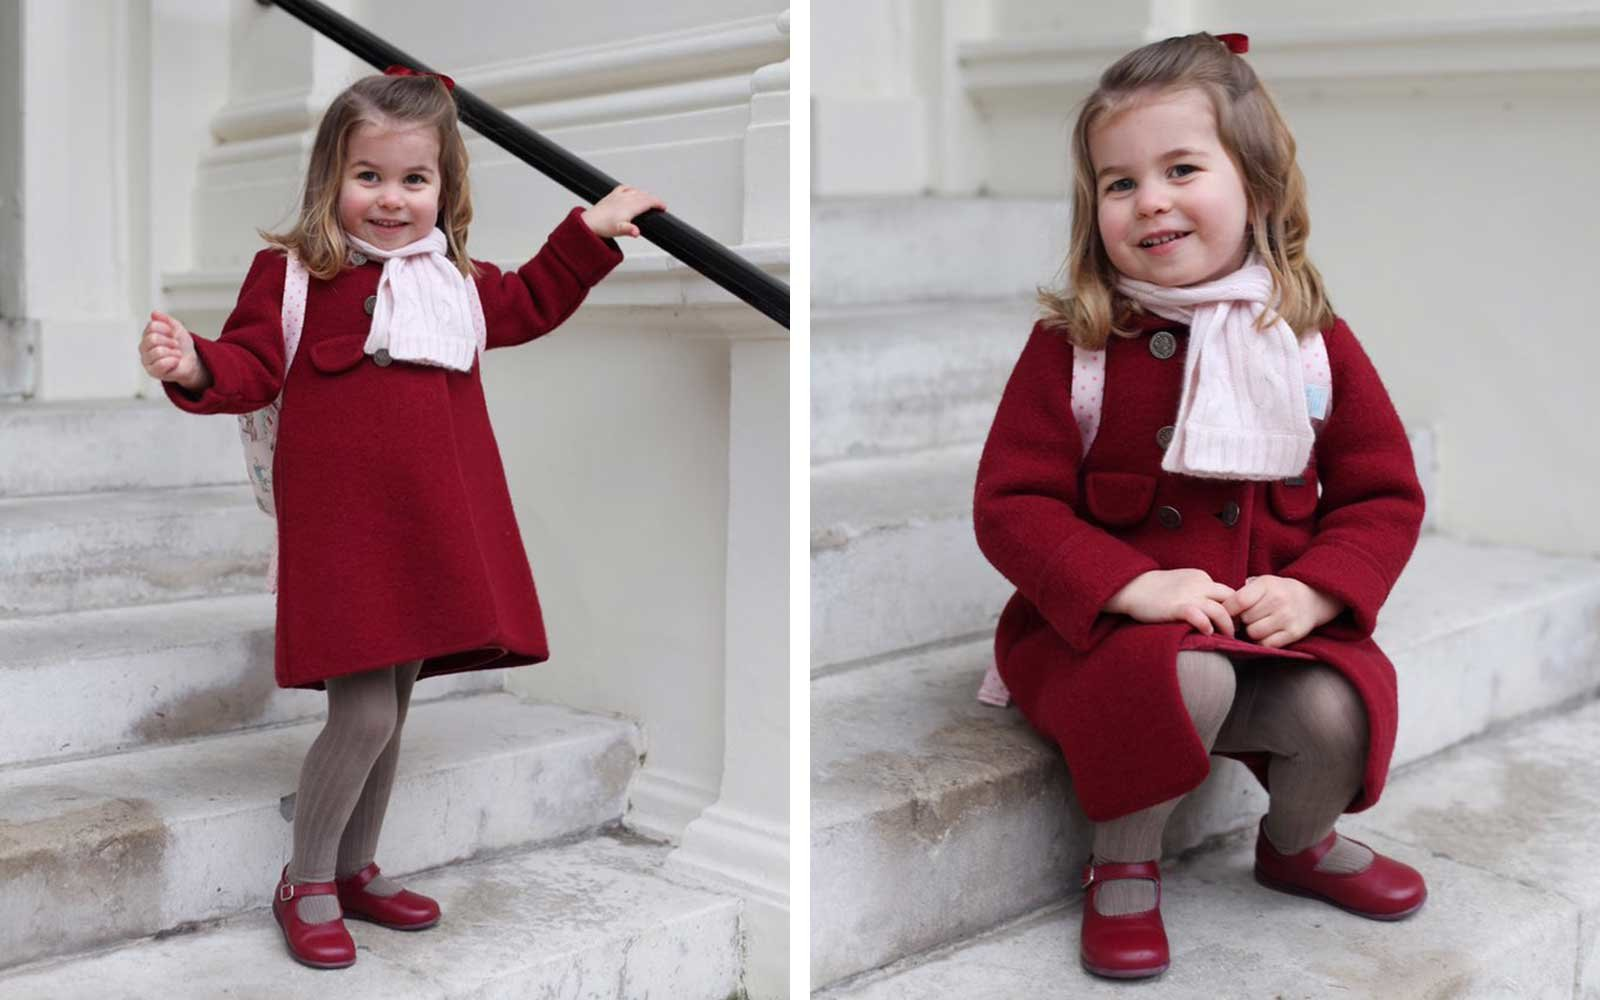 Princess Charlotte at her first day of nursery